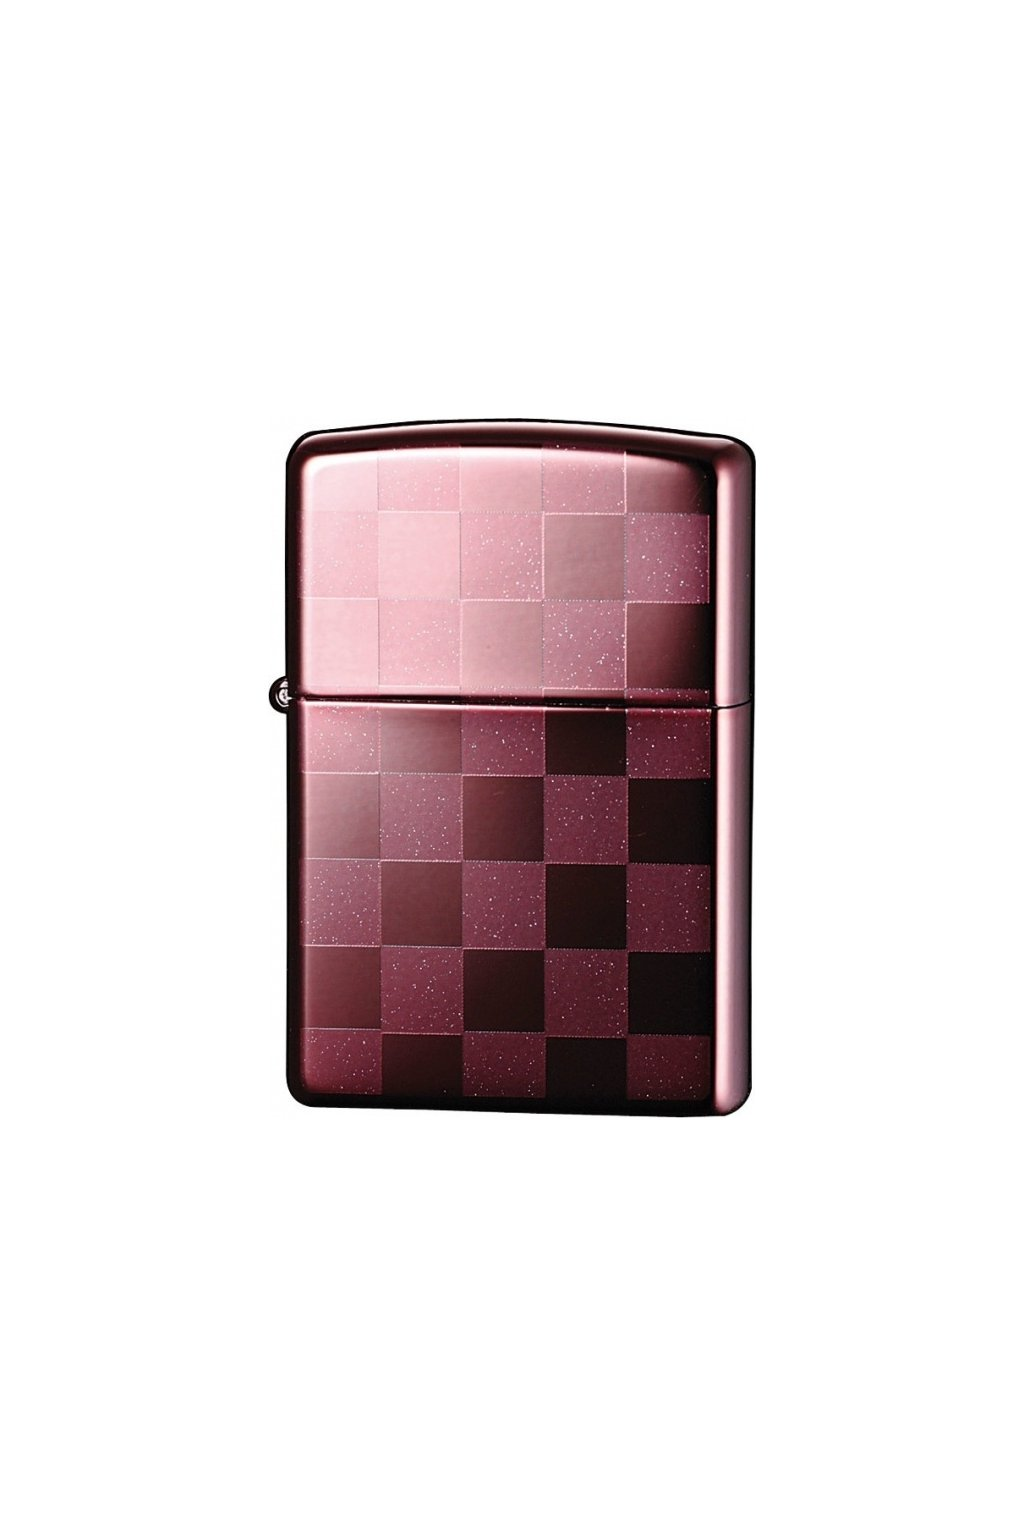 93848 zippo zapalovac 26466 color checker rose